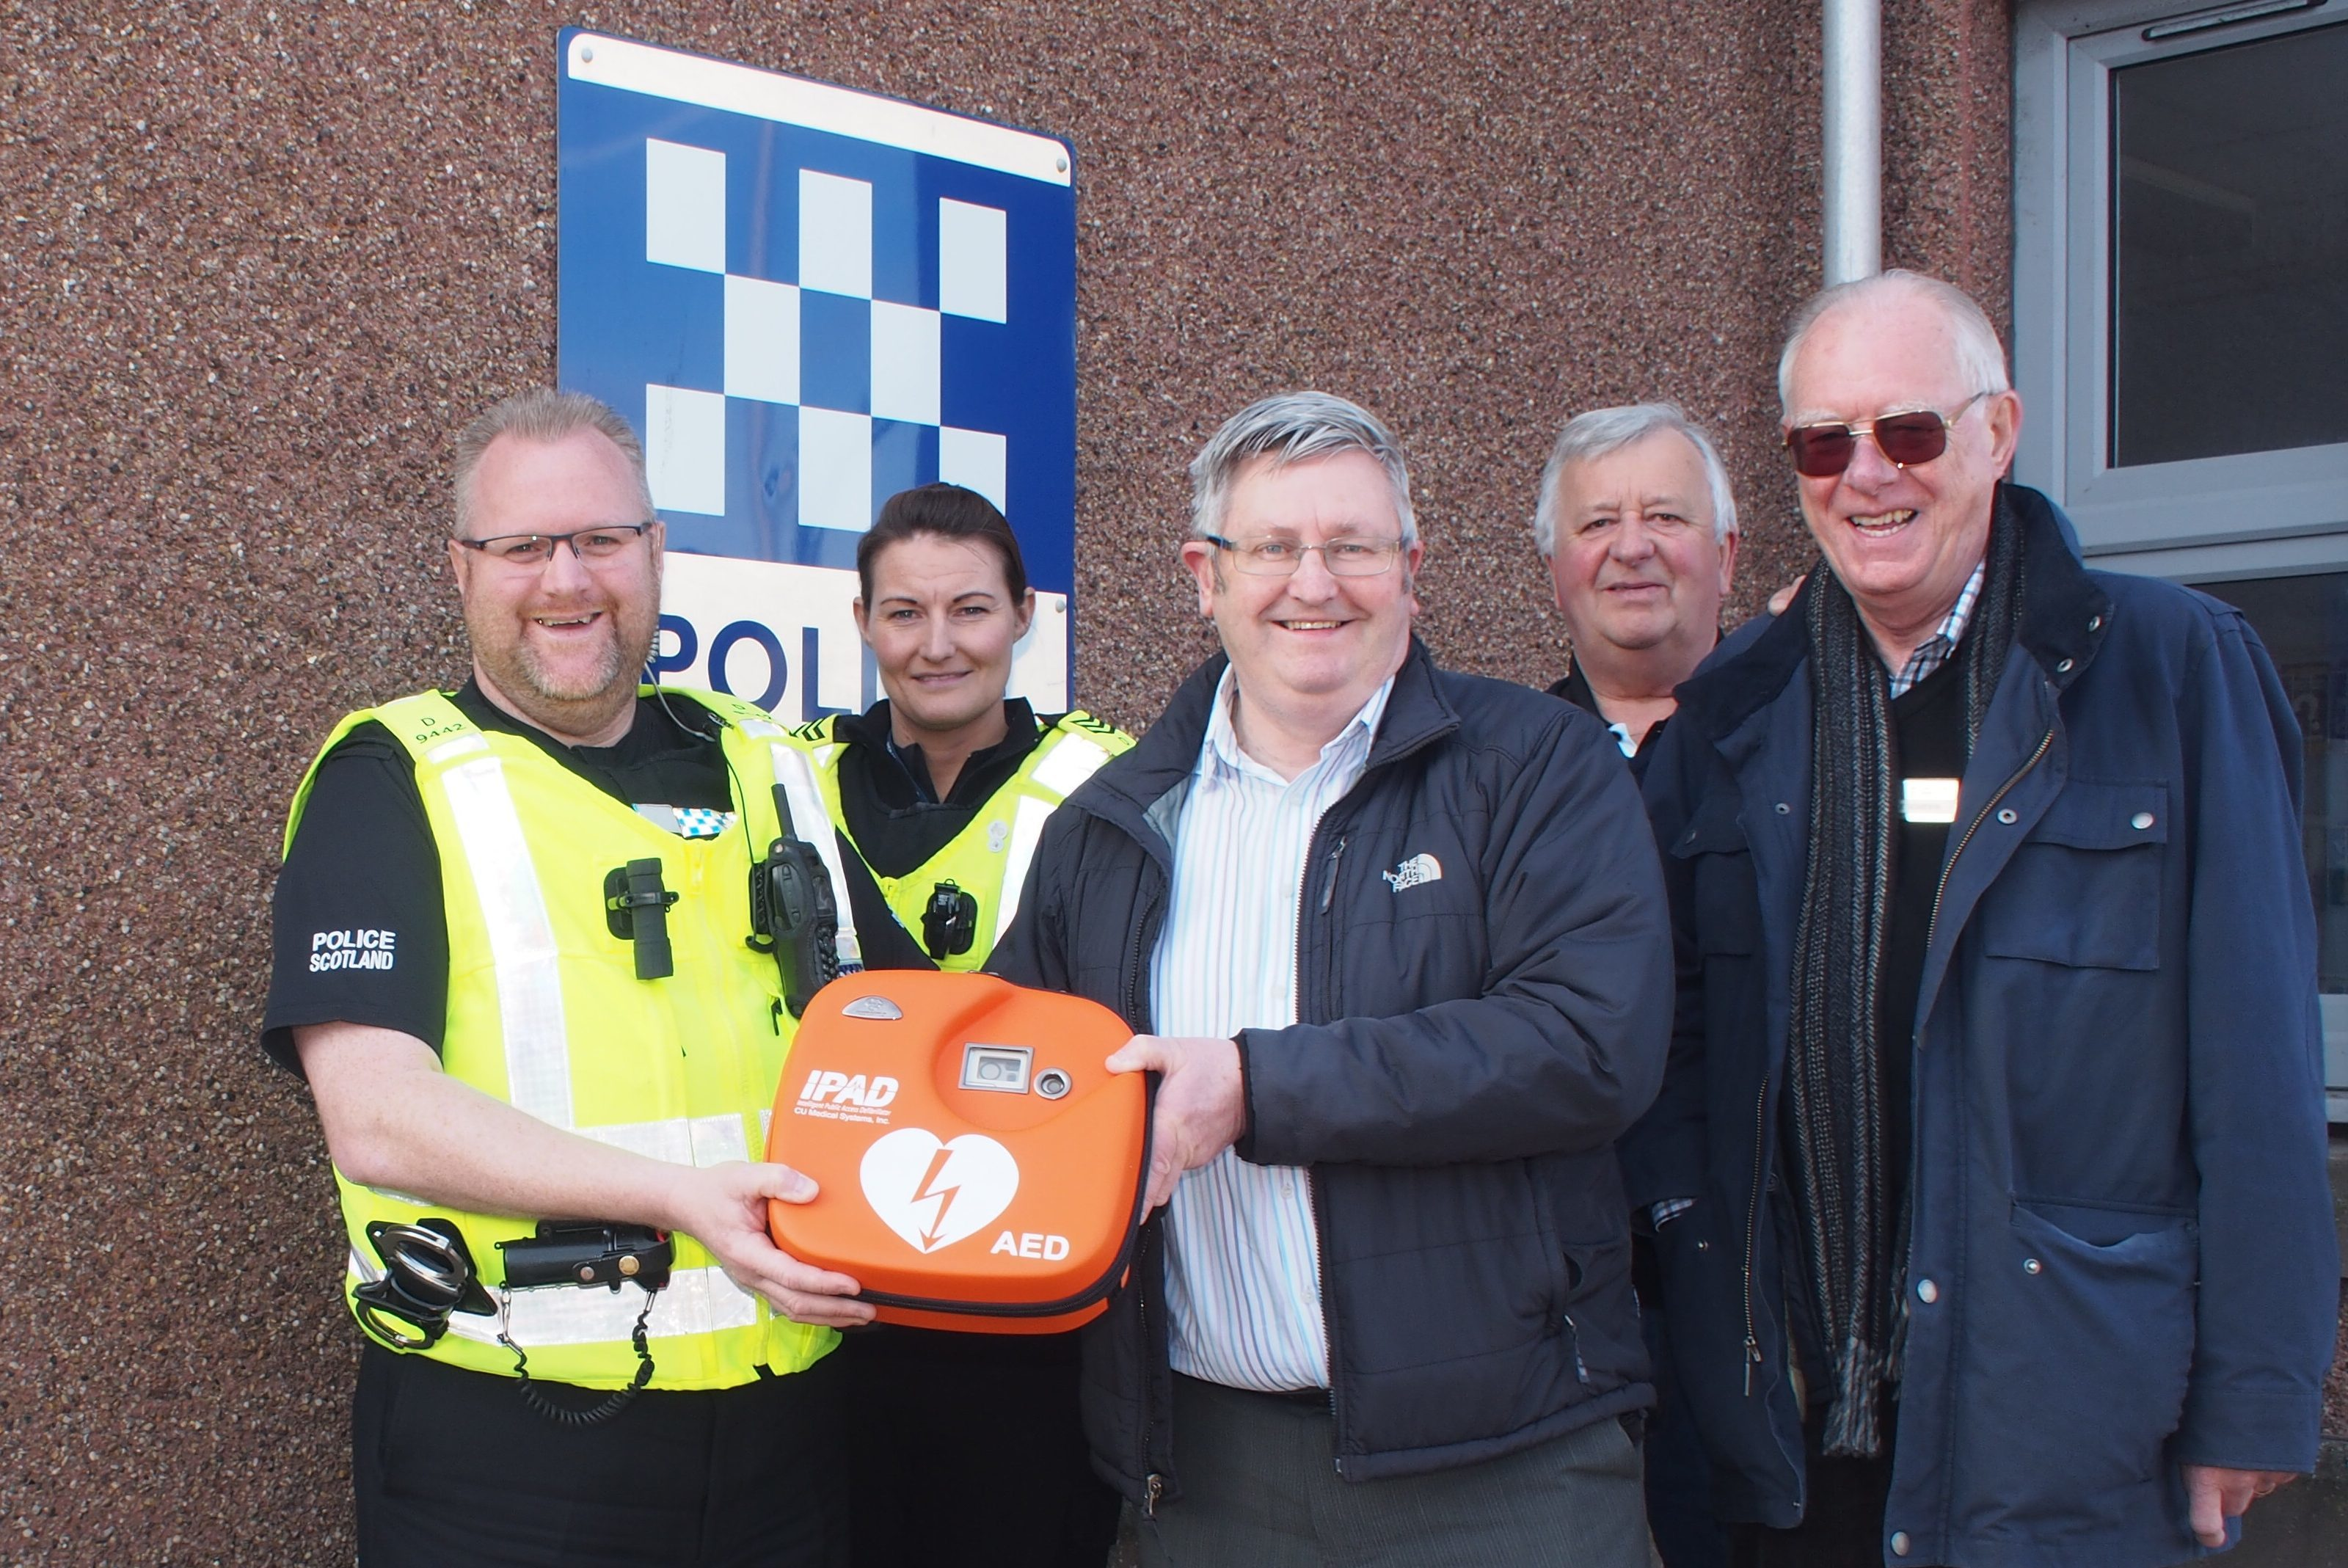 The latest Arbroath defibrillator was installed outside the police station in Gravesend